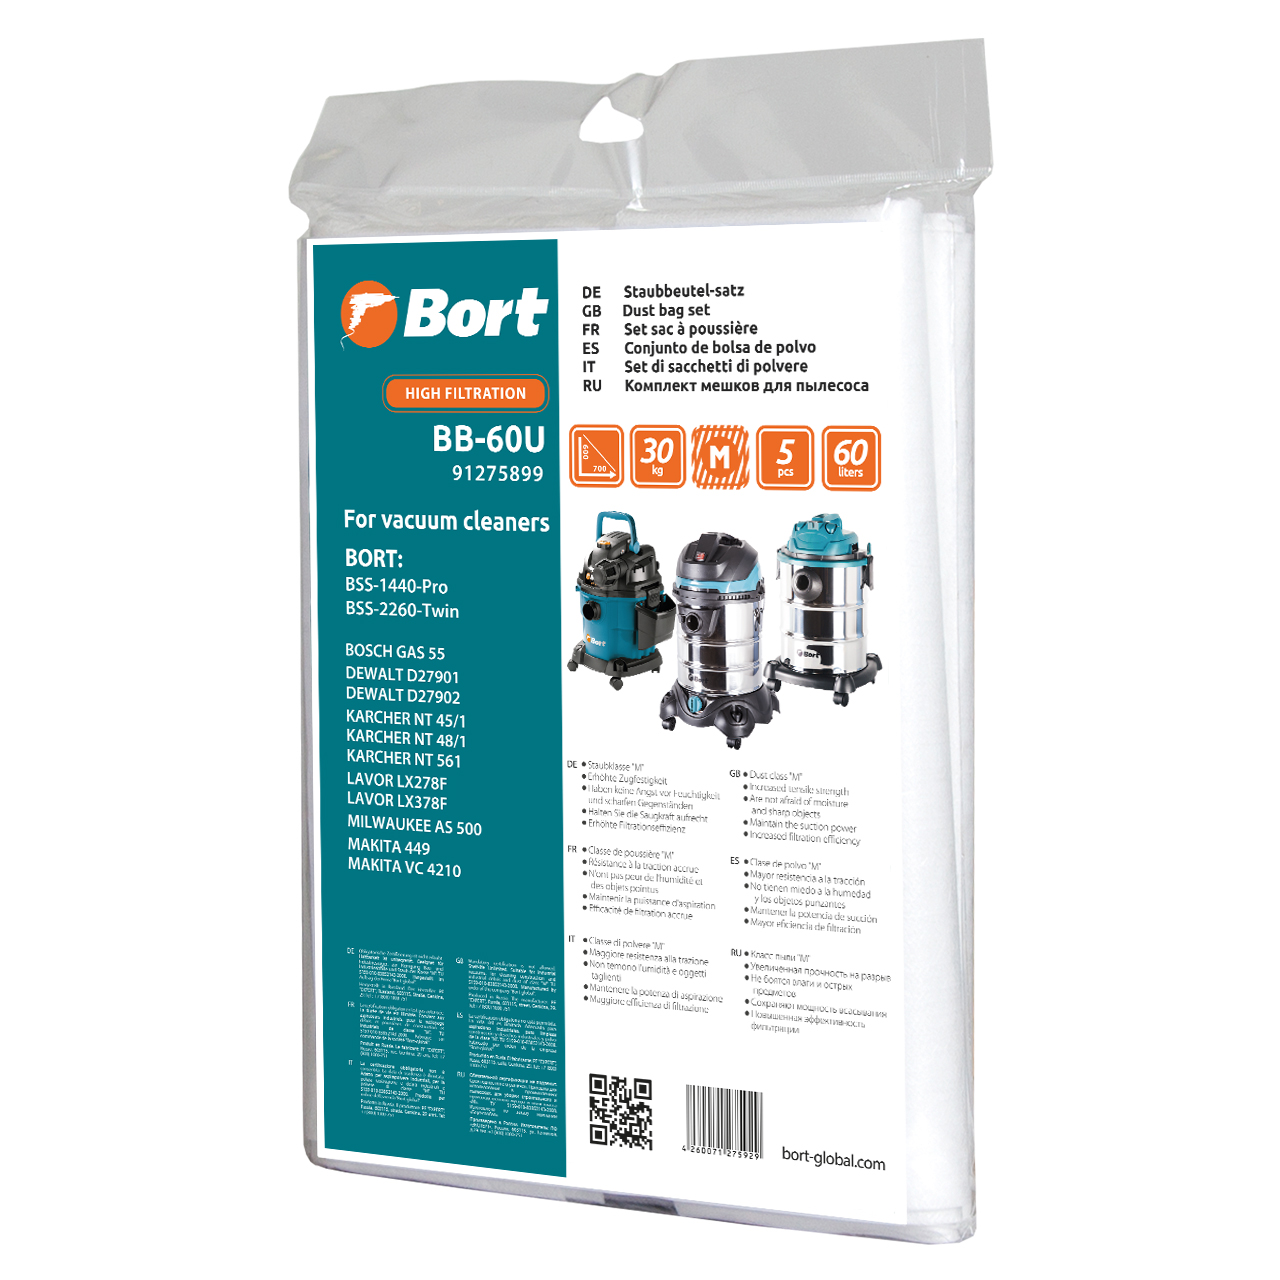 Bags set dust collection for vacuum Cleaner bort BB-60U (volume 60, 5 pcs, BSS-1440-Pro; BSS-2260-Twin) стоимость